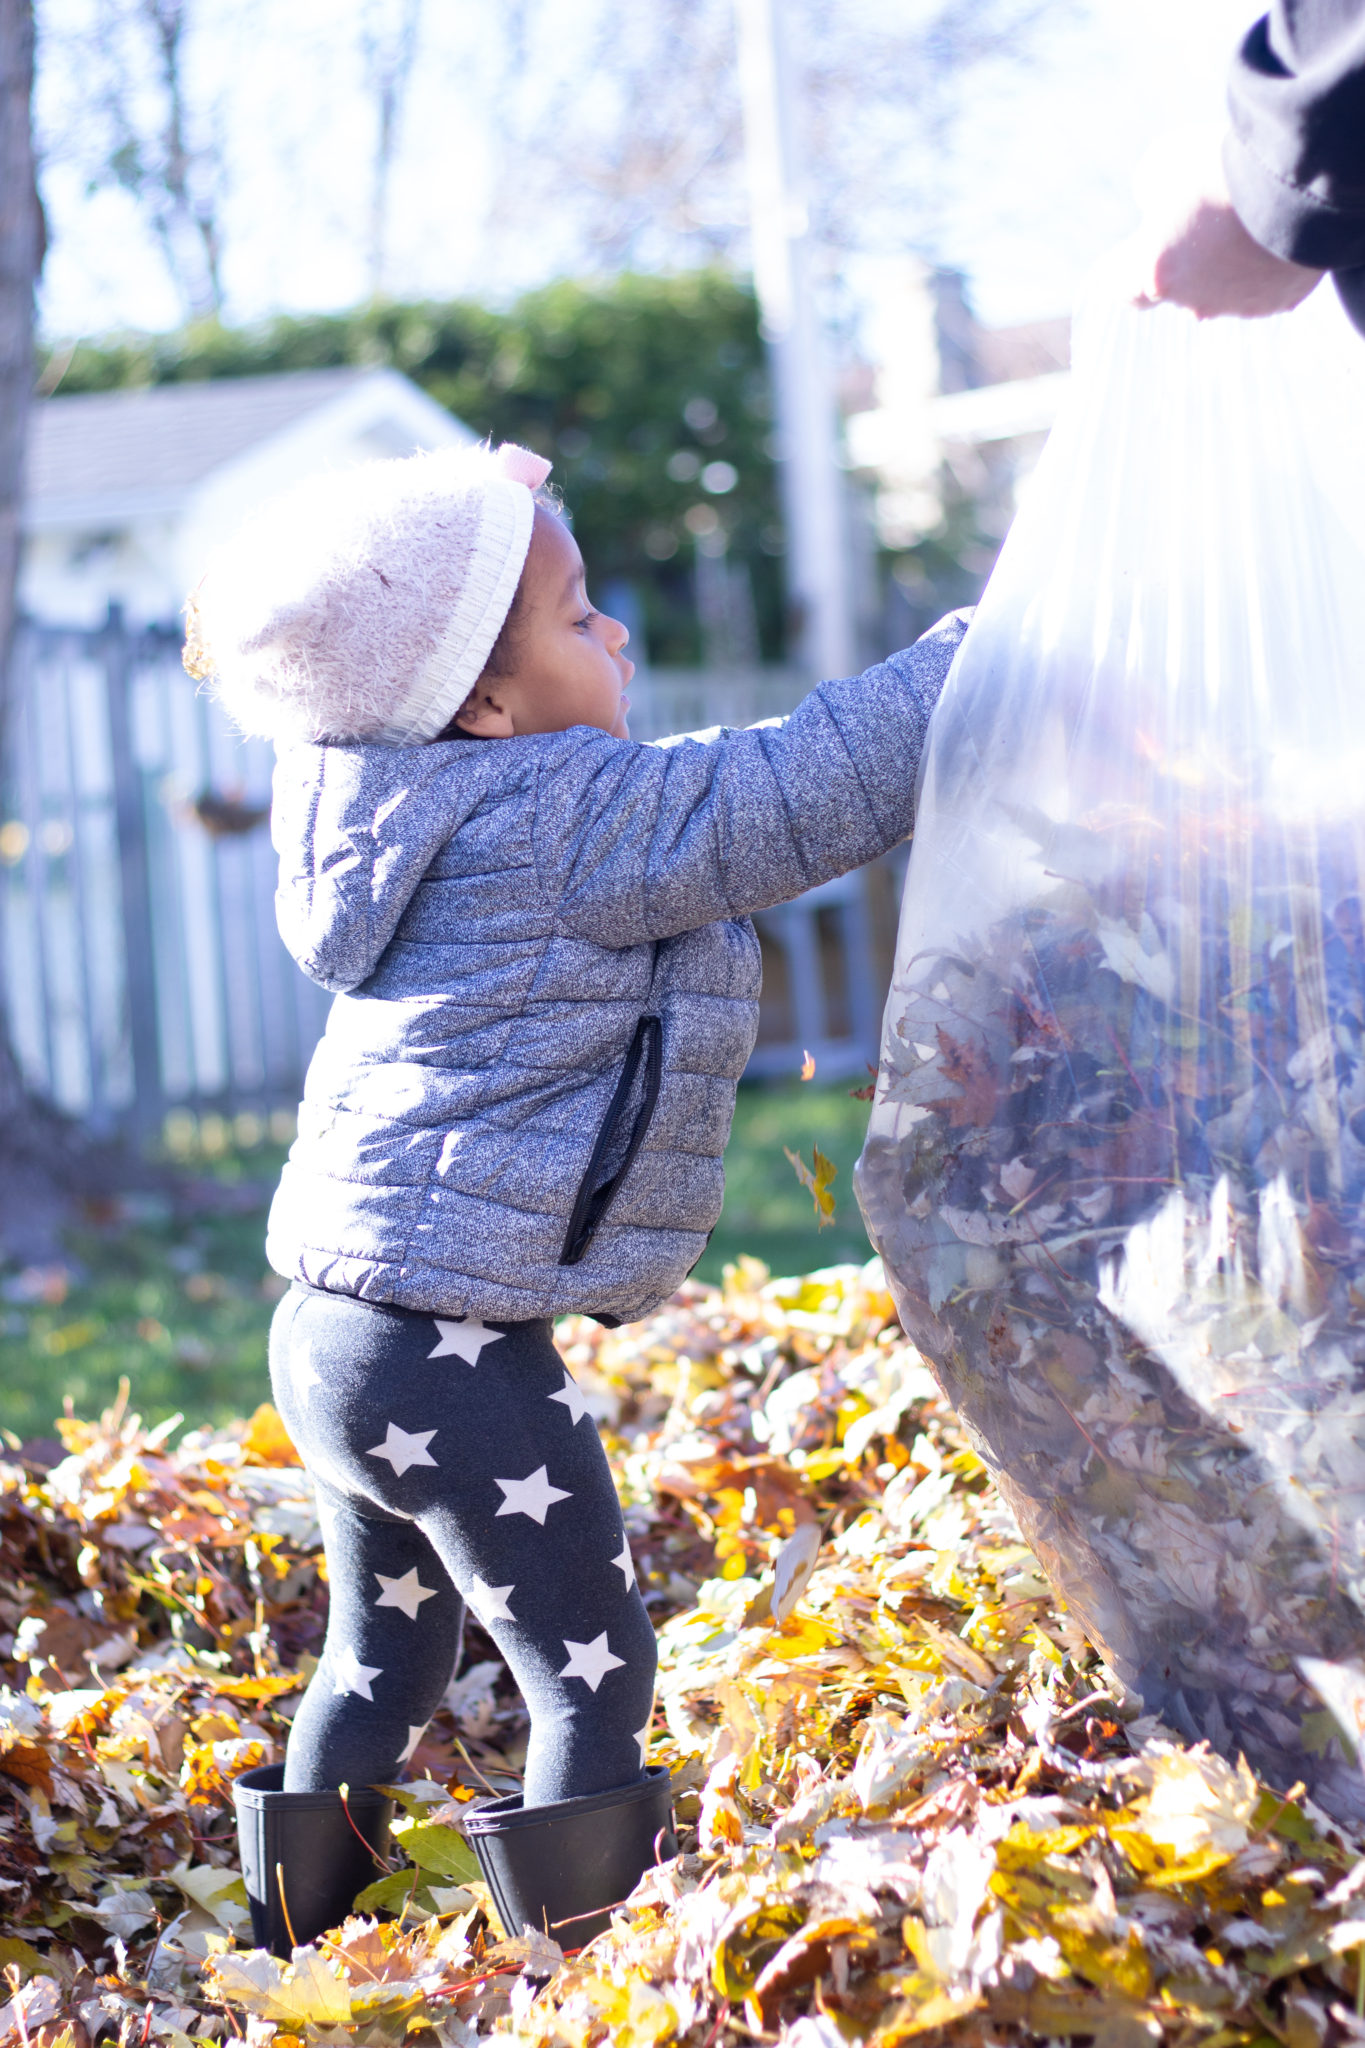 5 Important Tasks To Get Your Backyard Winter Ready